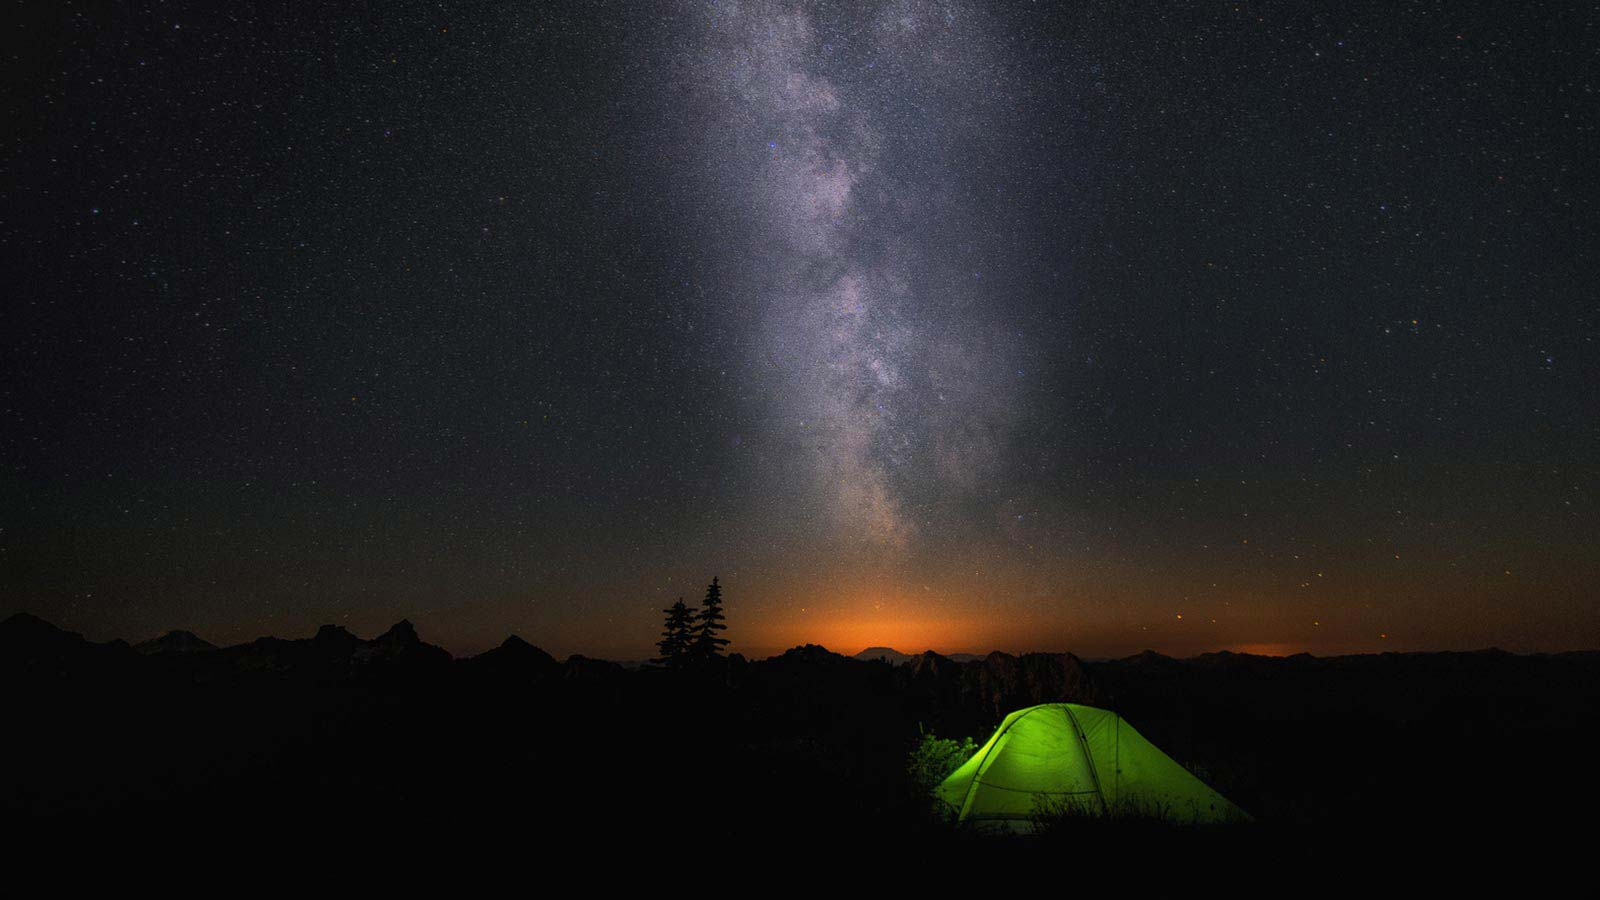 An illuminated tent sits under the milky way.